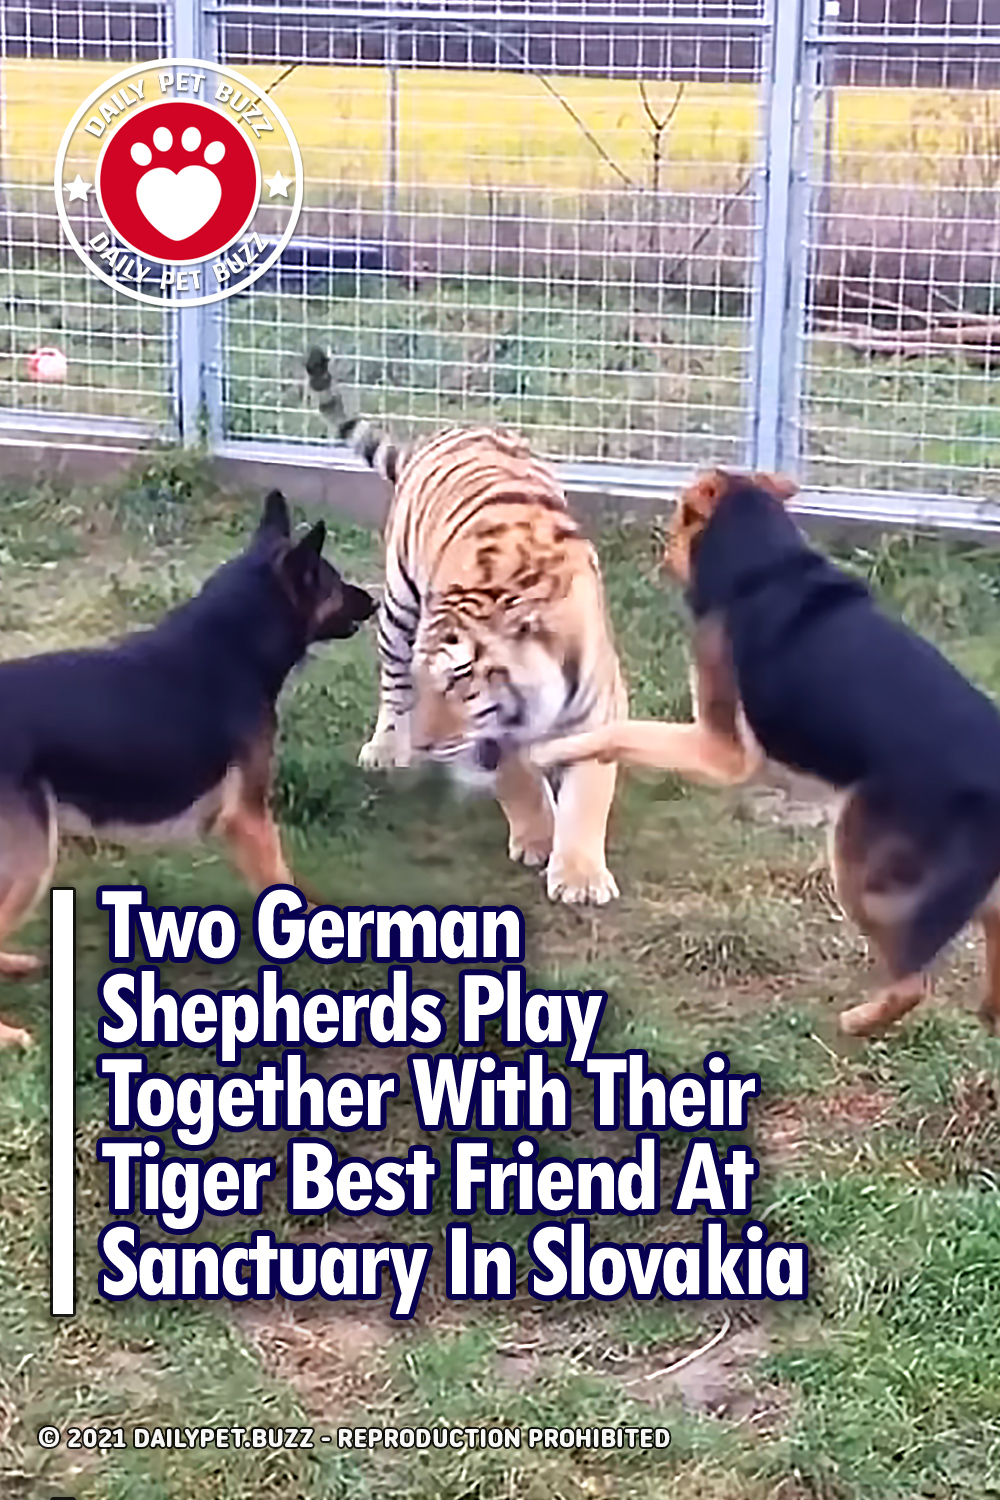 Two German Shepherds Play Together With Their Tiger Best Friend At Sanctuary In Slovakia